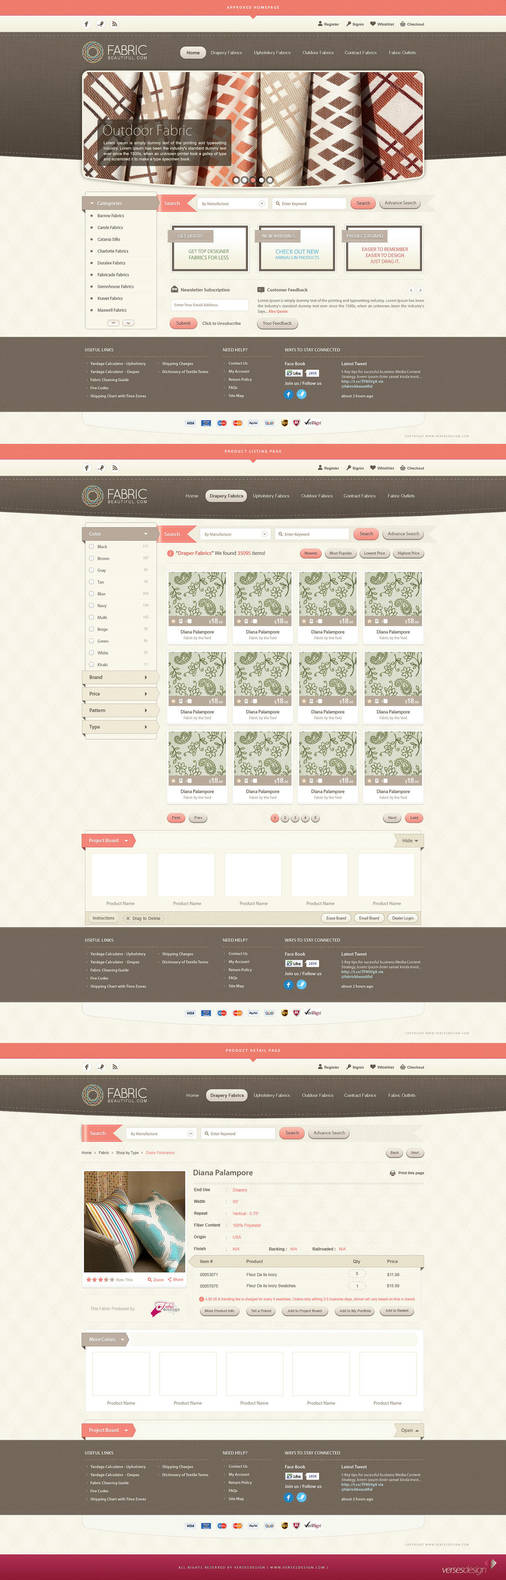 Fabric Beautiful Full Website by waseemarshad